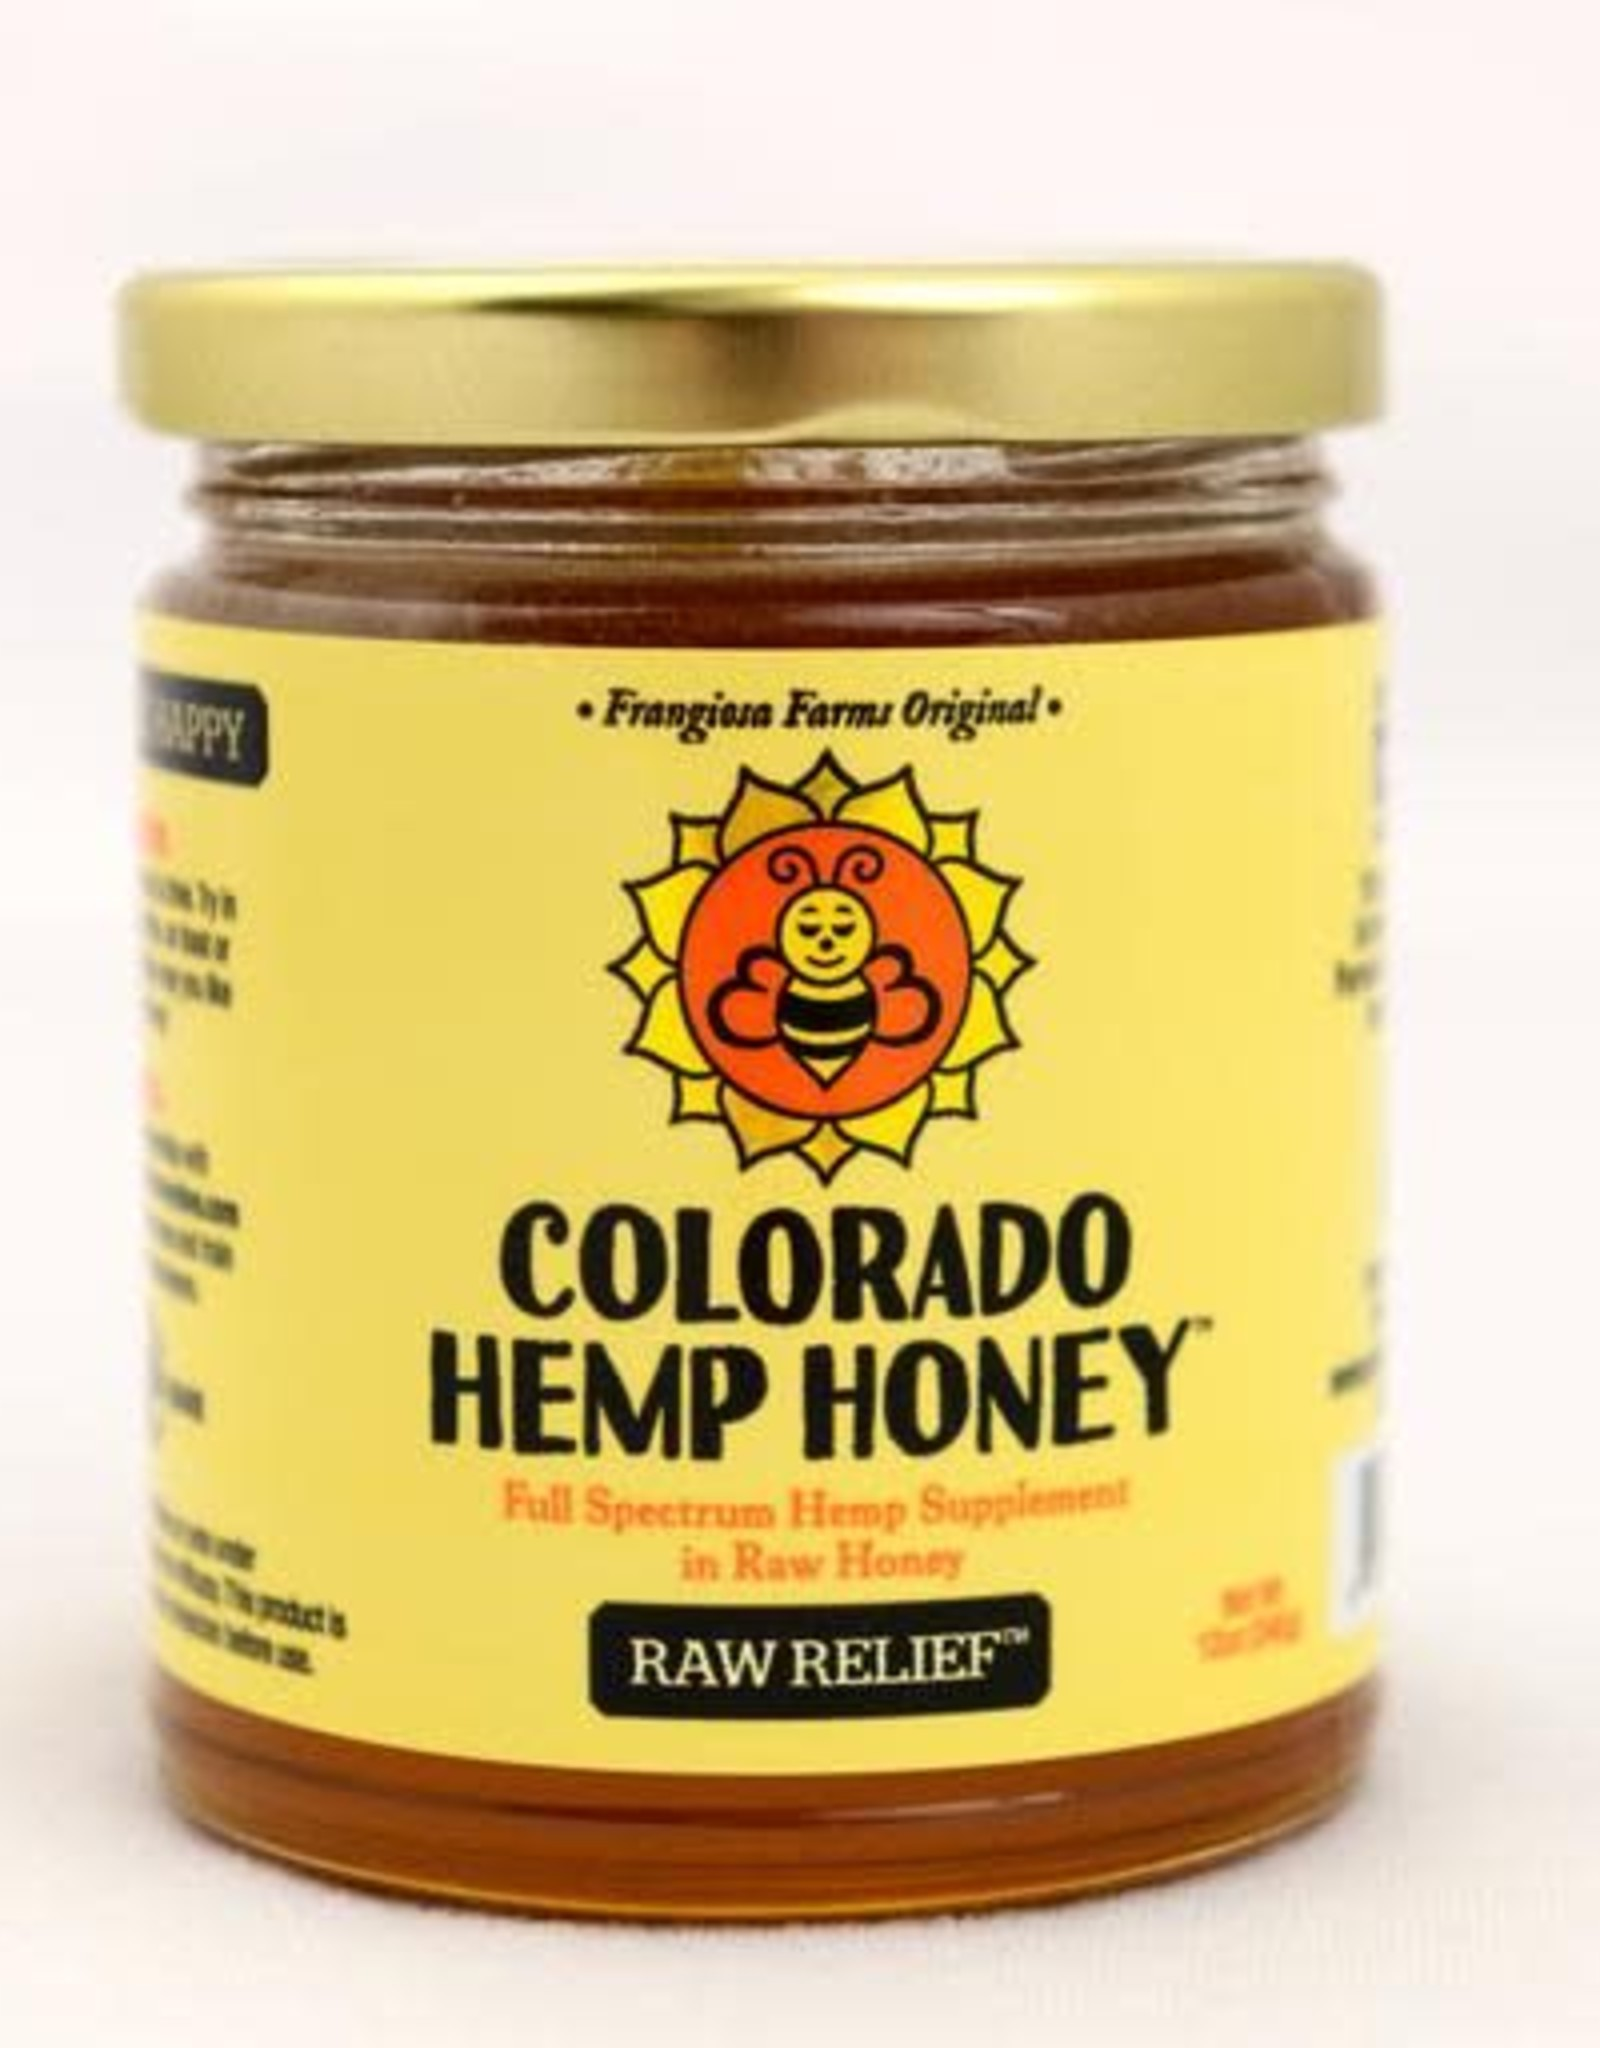 Colorado Hemp Honey Colorado Hemp Honey Raw Relief 6oz Jar